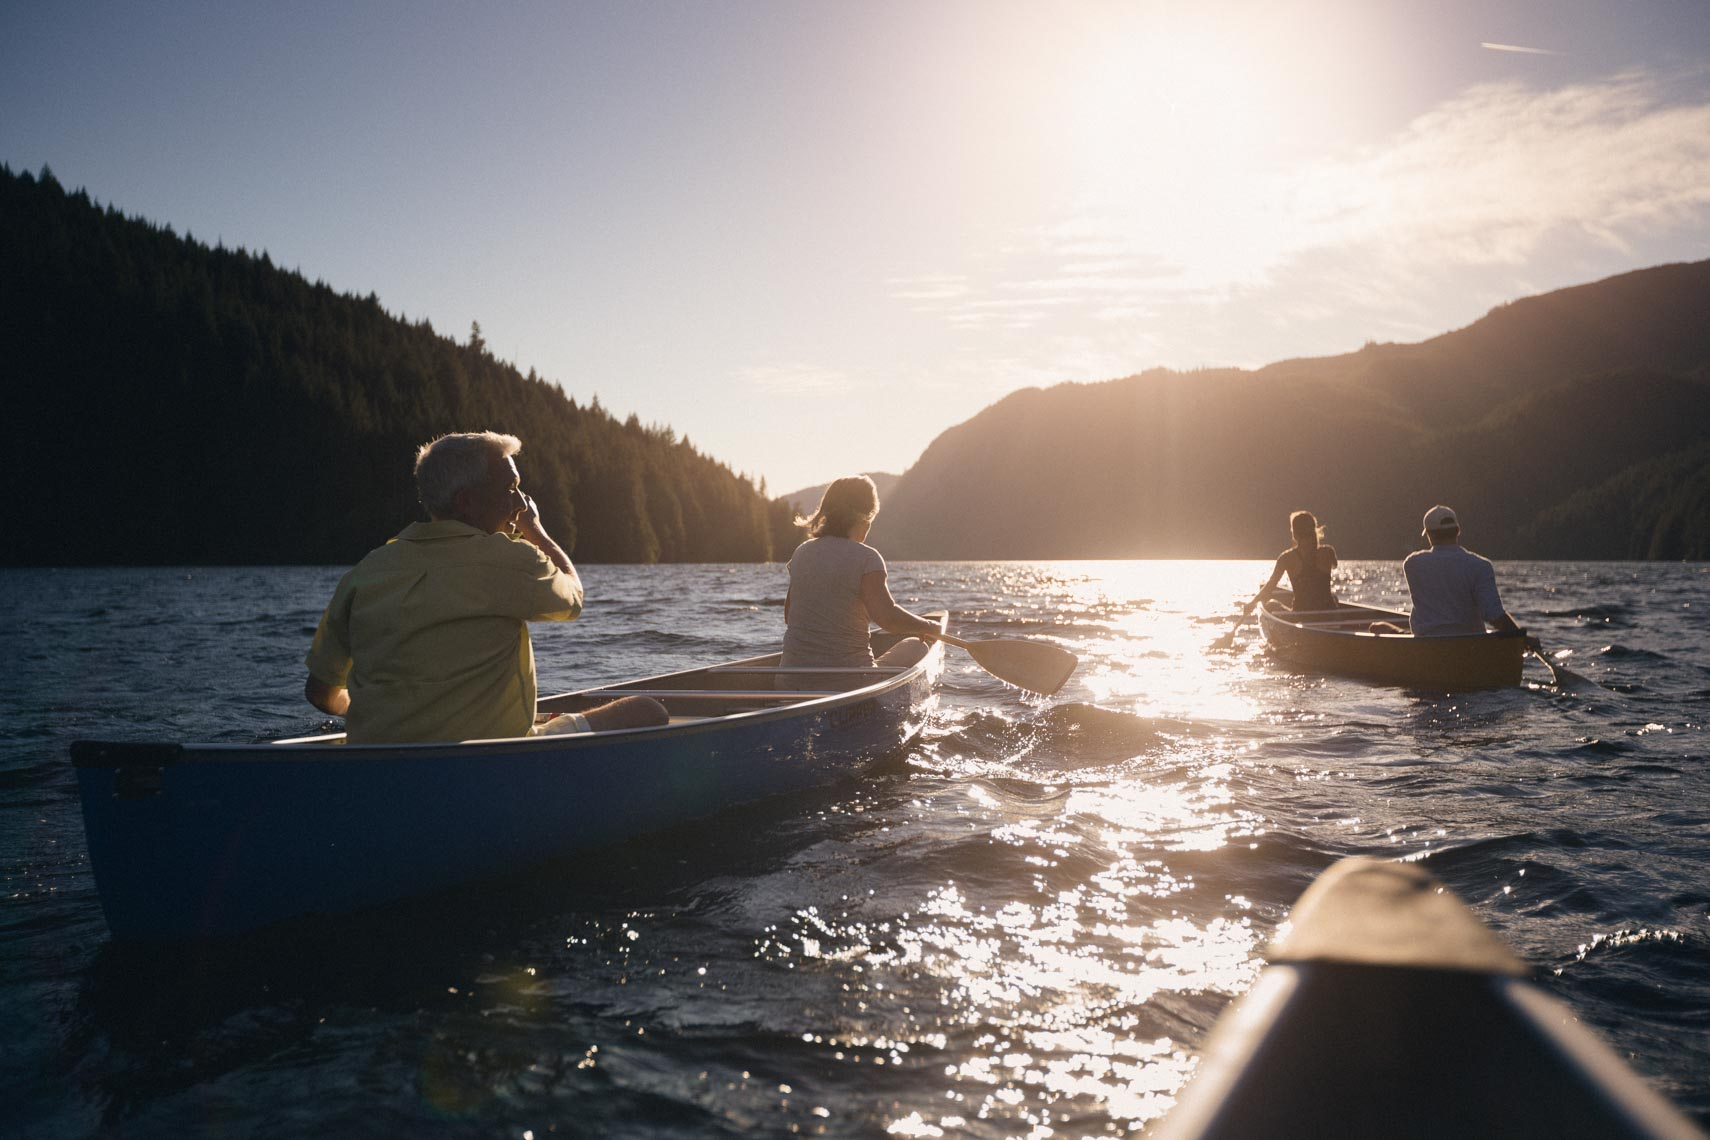 Canoeing at Sonora Lodge in British Columbia, Canada.